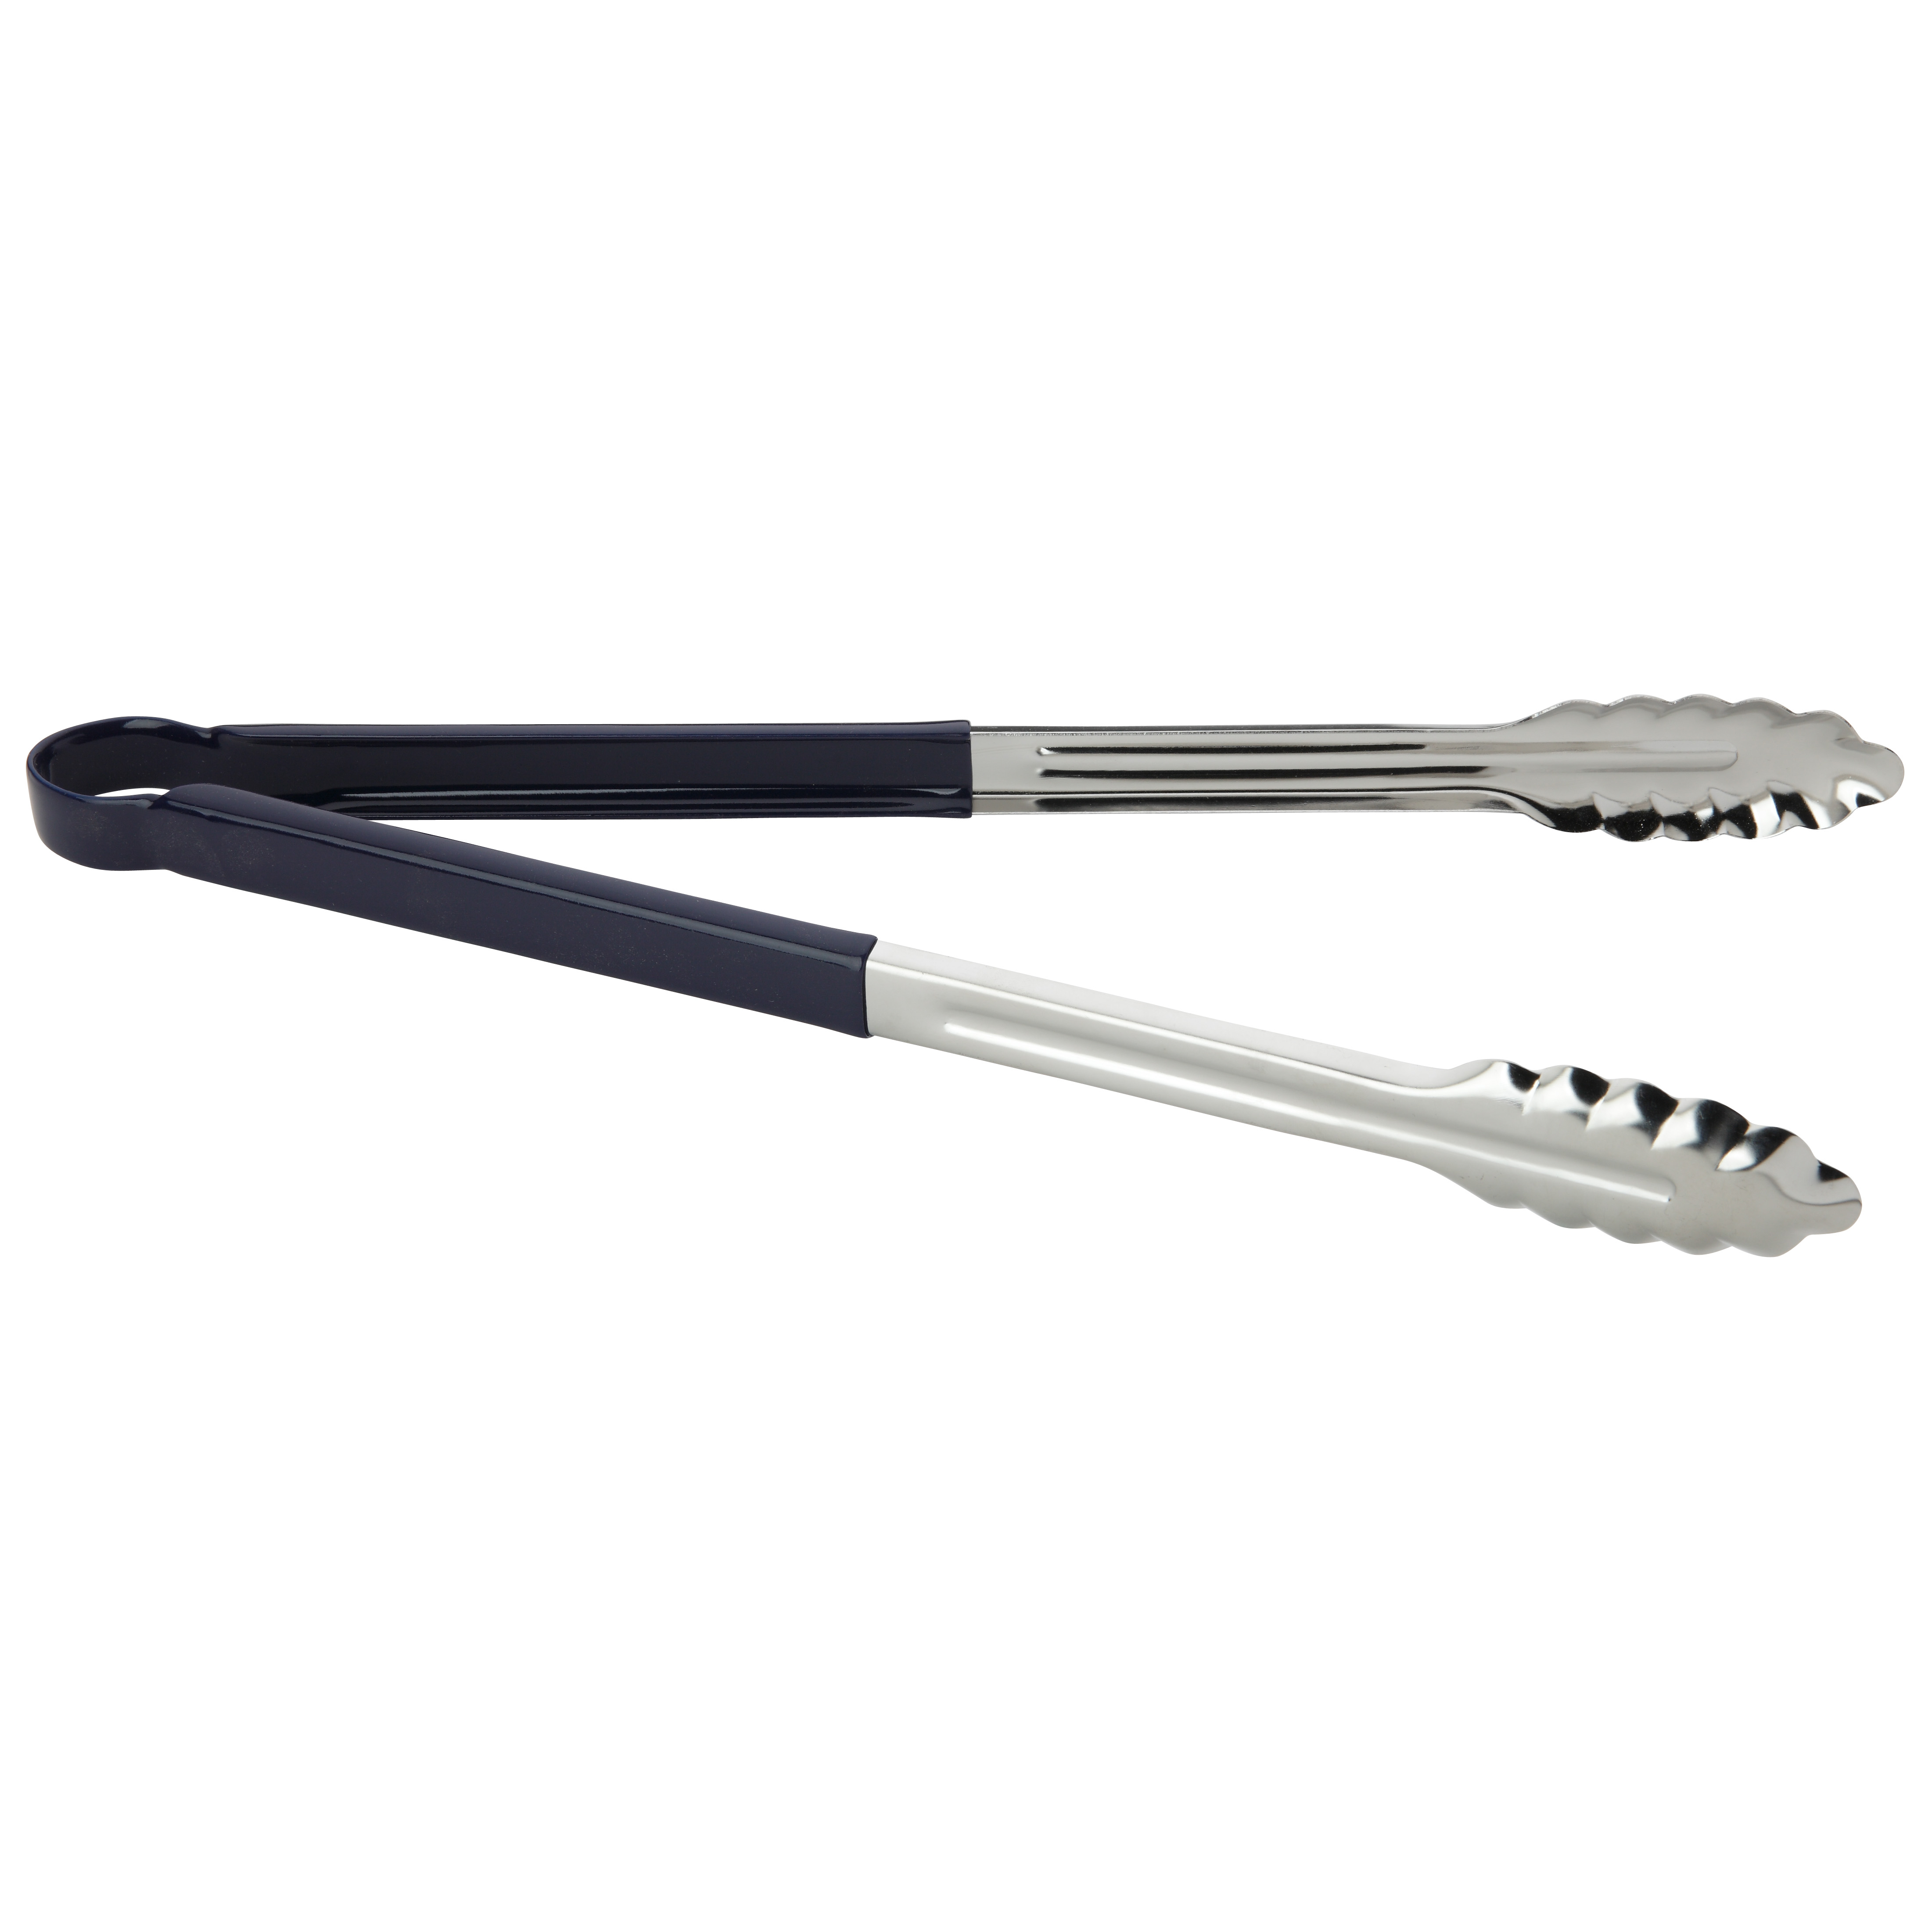 Royal Industries ROY TSC 16 BL tongs, utility